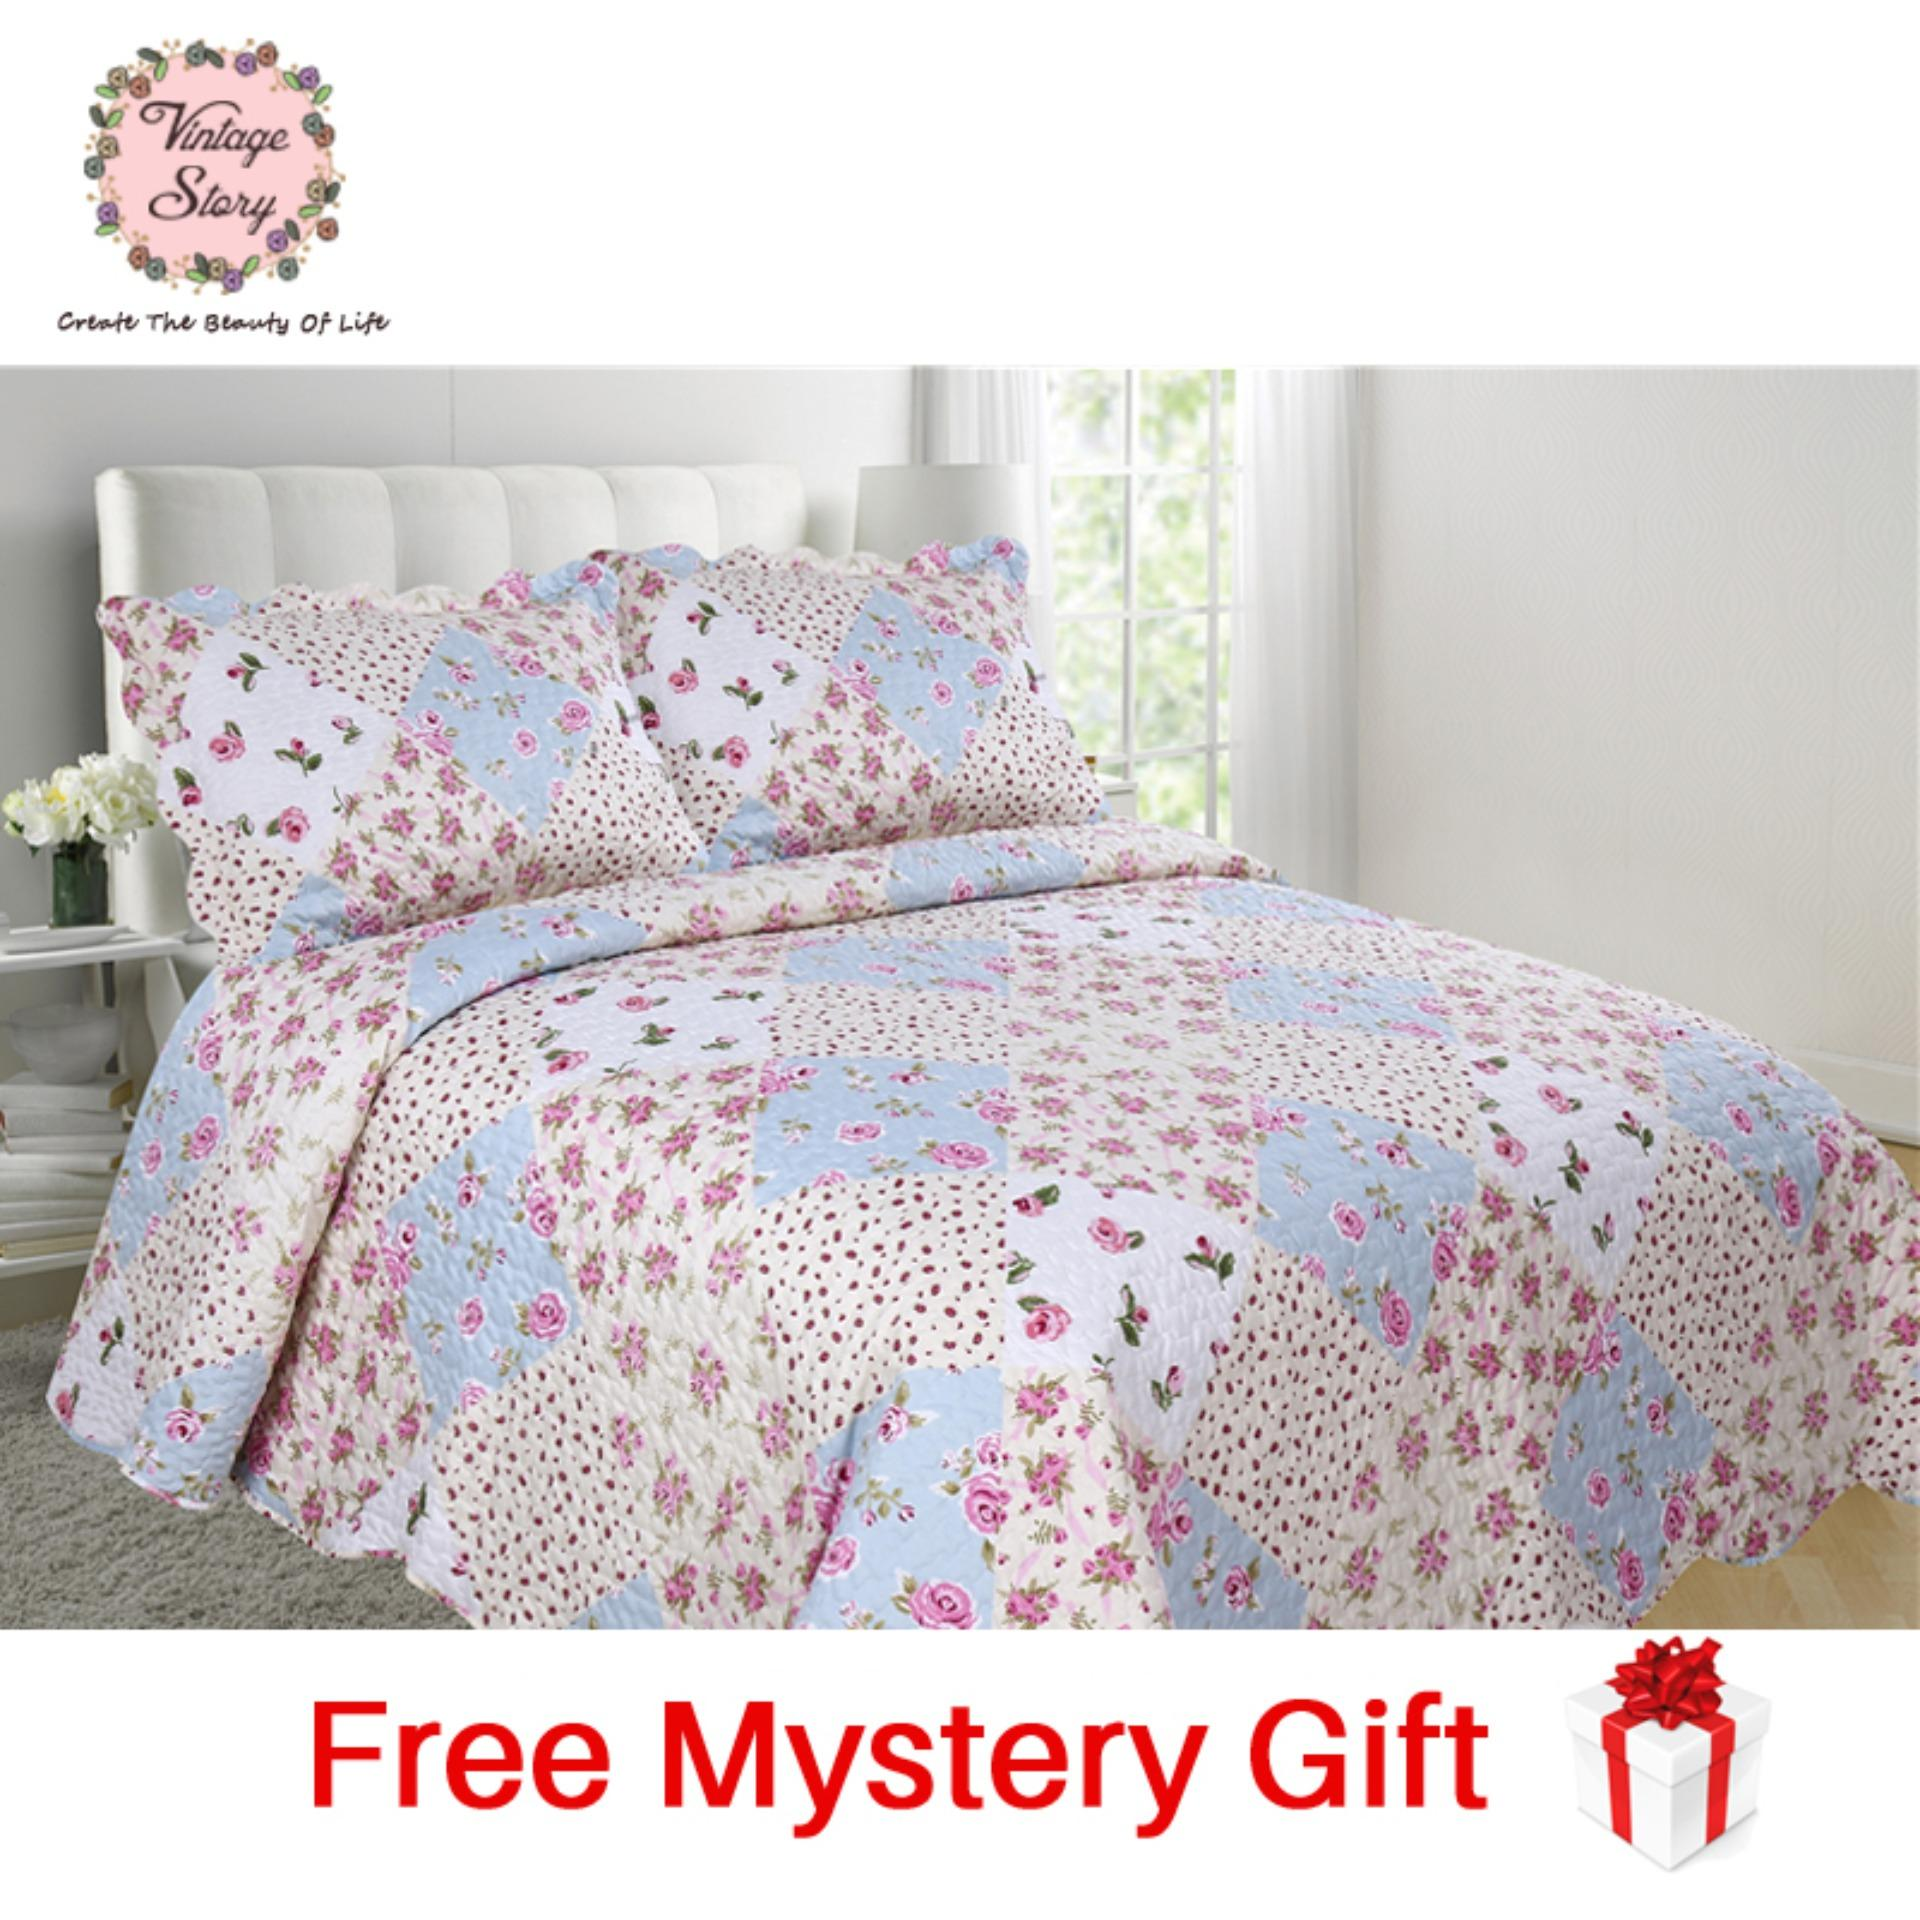 Vintage Story - Shabby Bed Cover Set Korea Size King 220x240 cm B12